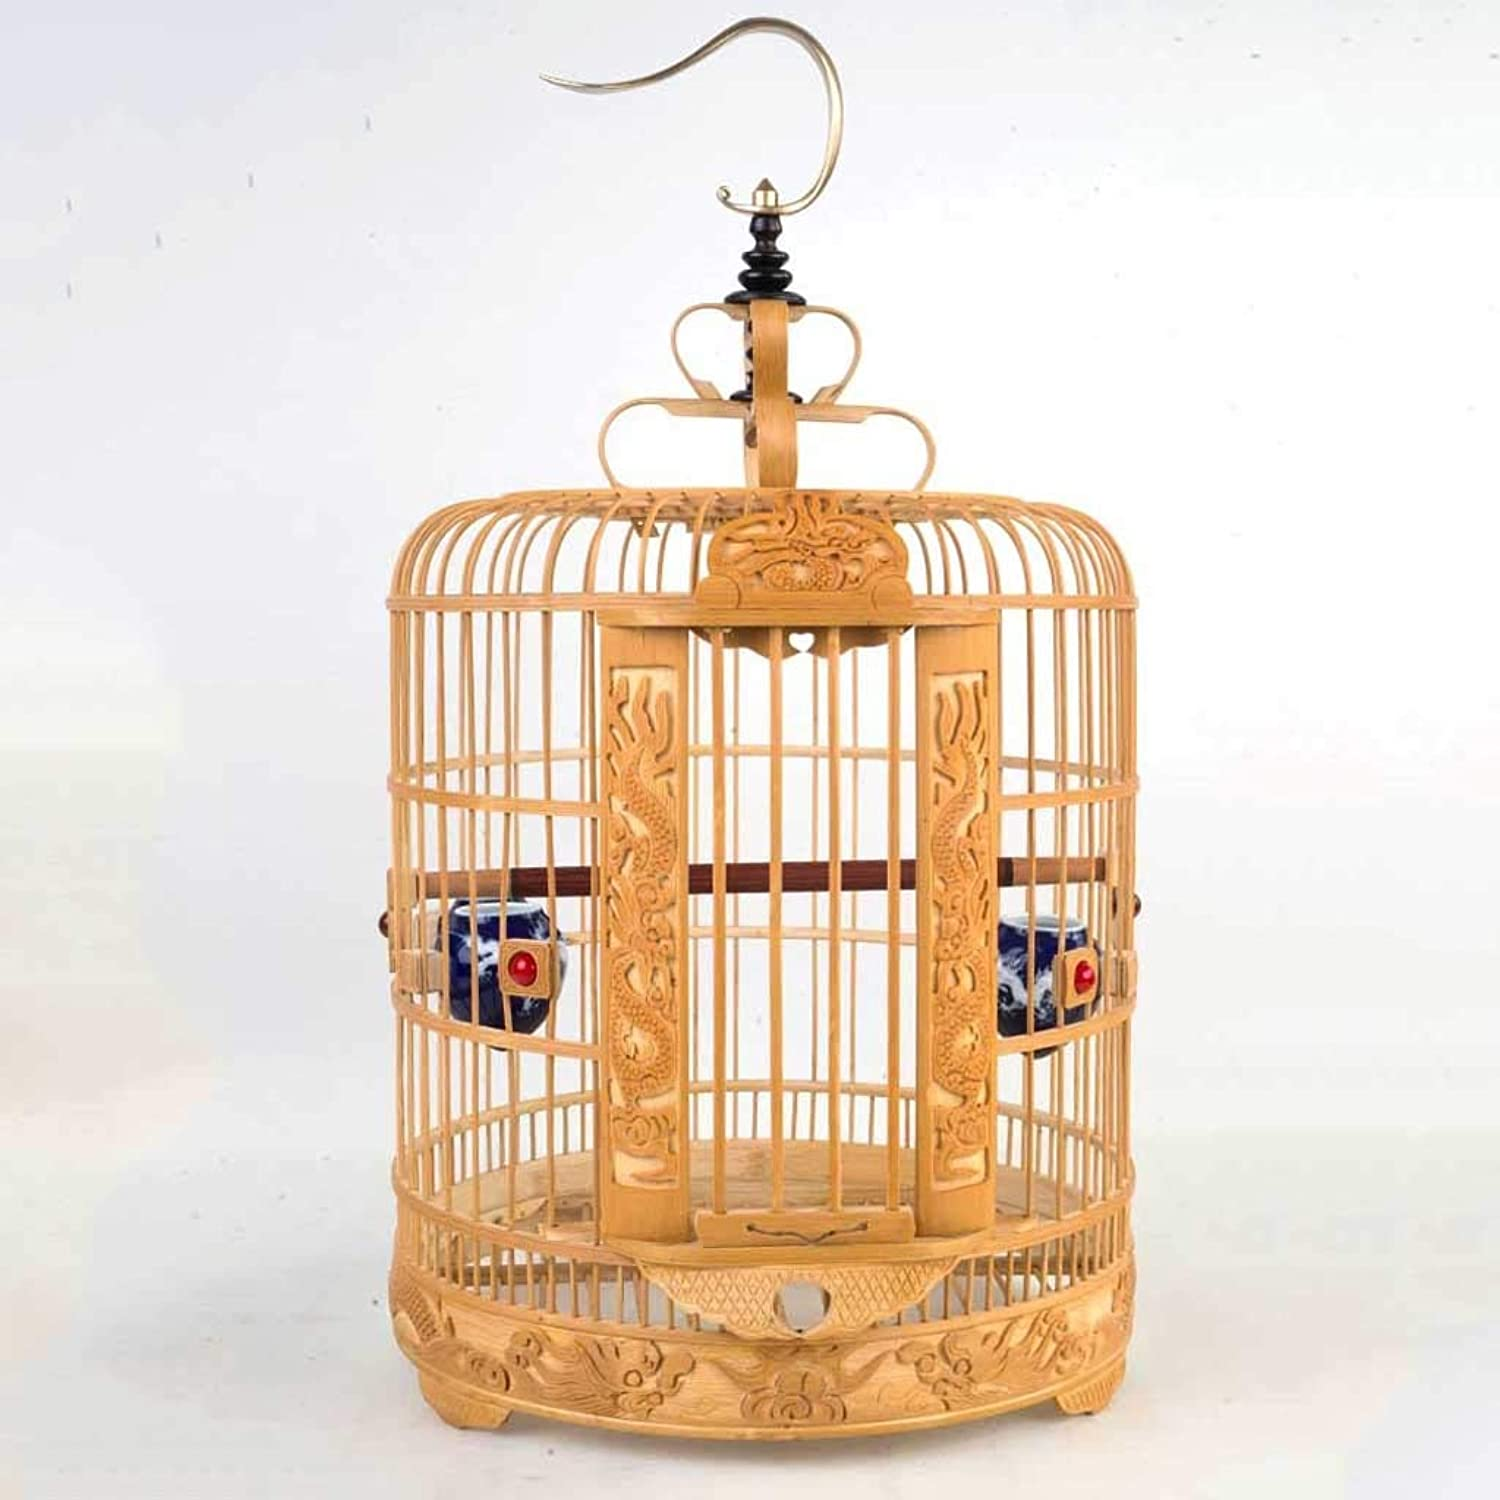 Bamboo Bird Carrier Bird Culture Cage Outdoor, Classic Upgrade Hanging Flight Cage Indoor Bird Cage Can Hang Parred Cage, Suitable For Parred Bird Bird